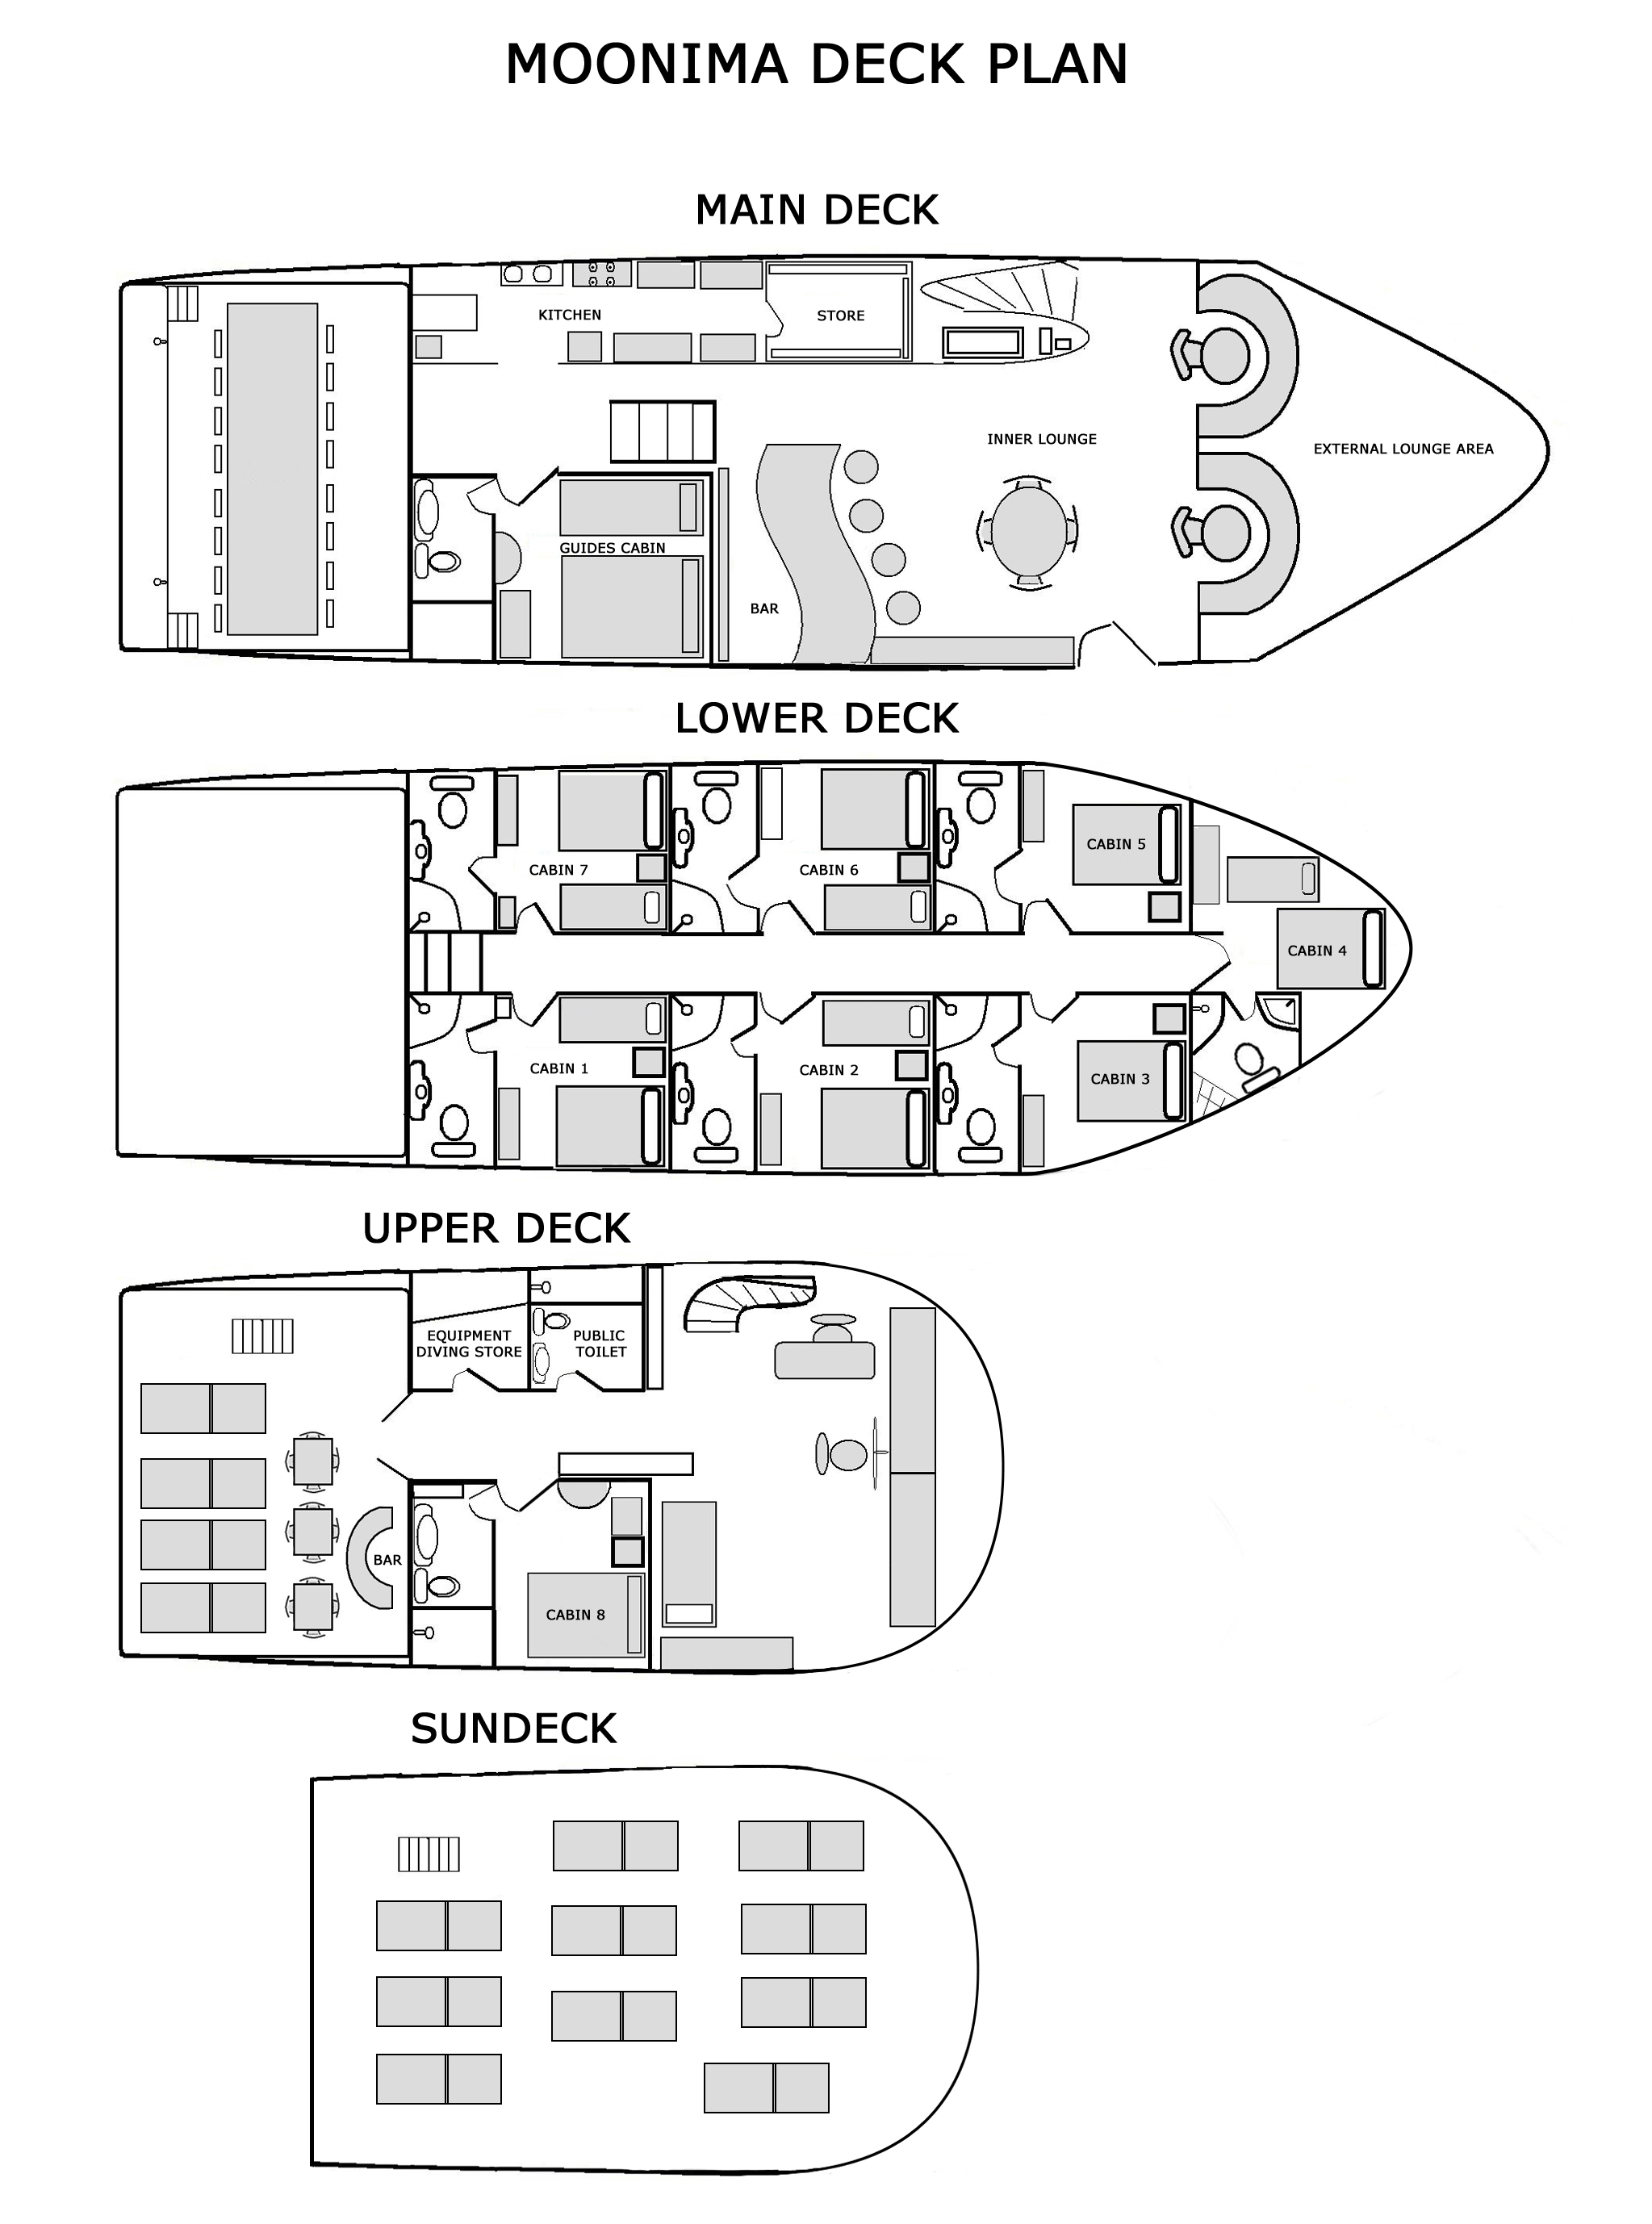 Moonima Liveaboard Deck Plan floorplan